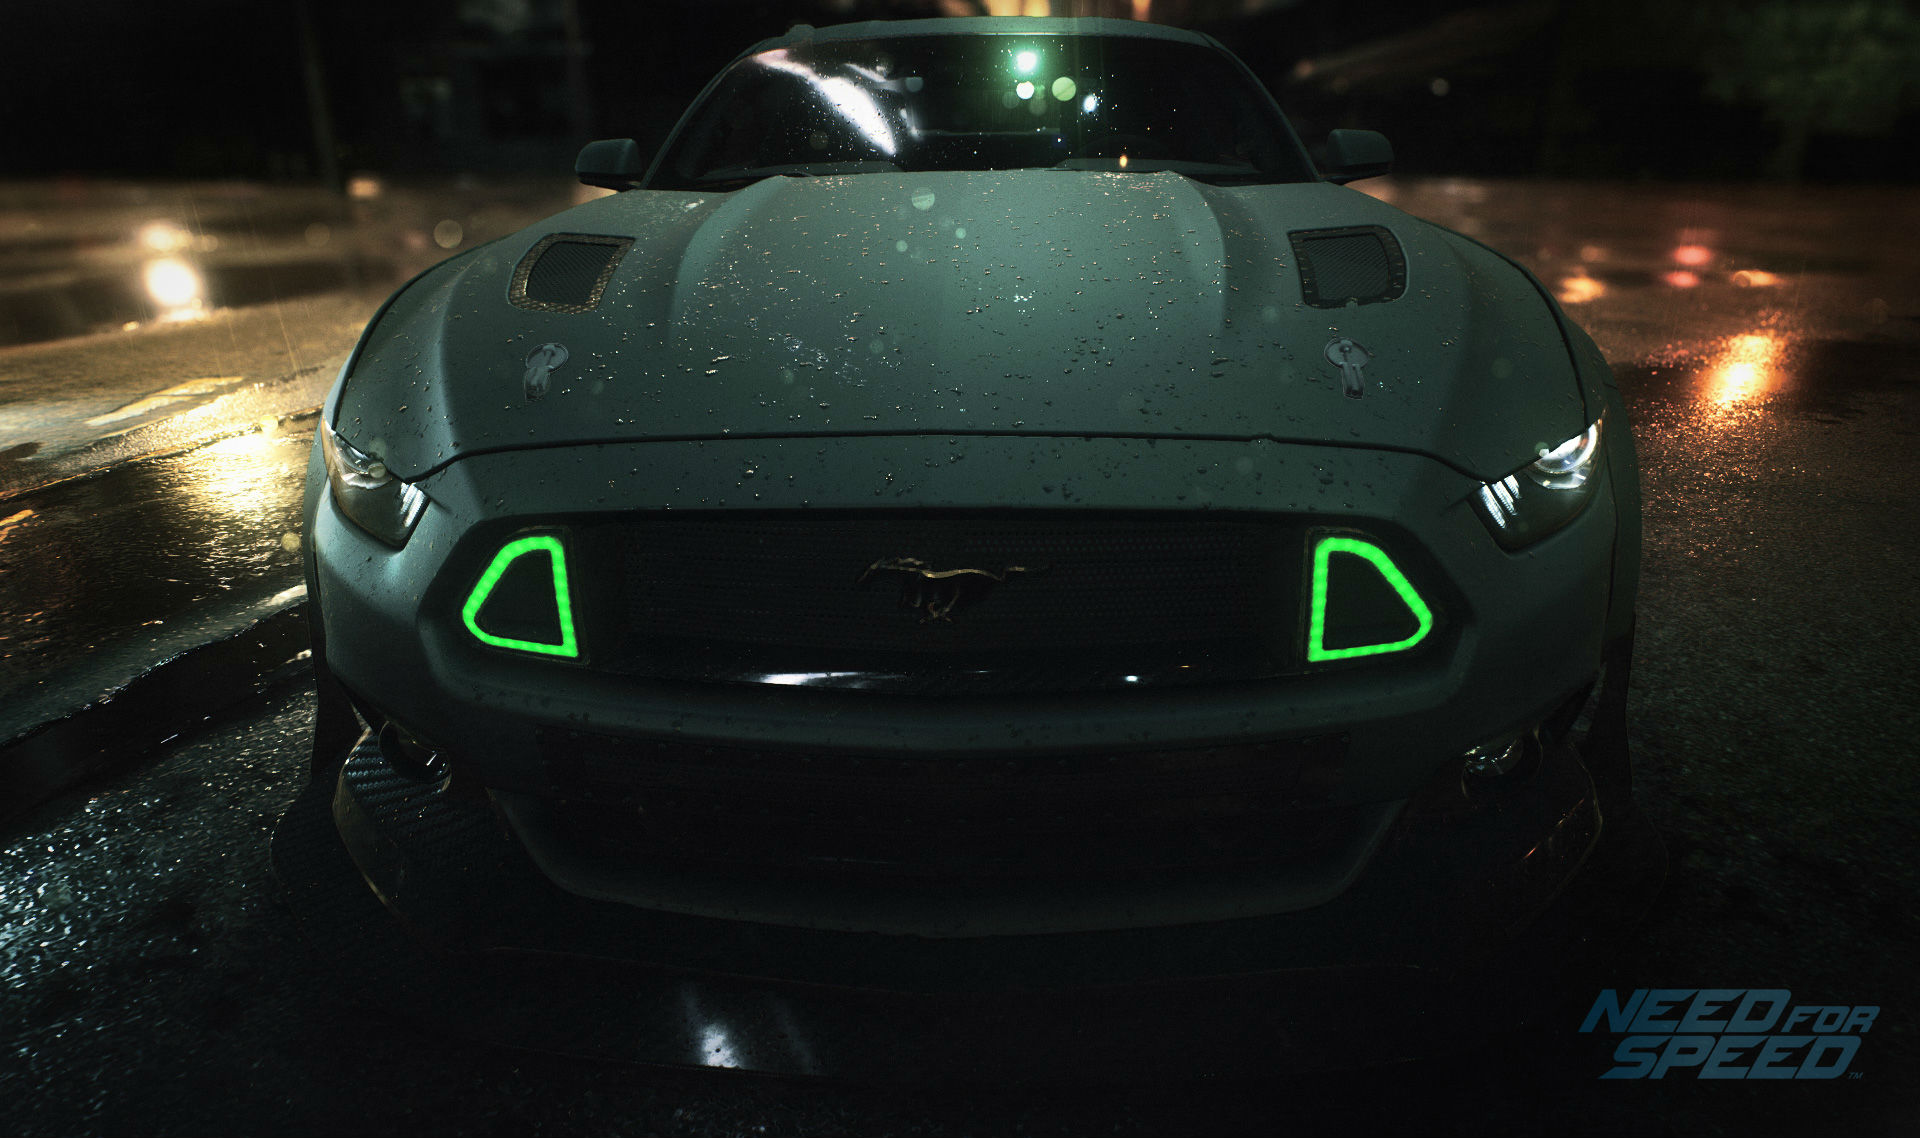 Need for Speed 2015 - Ford Mustang